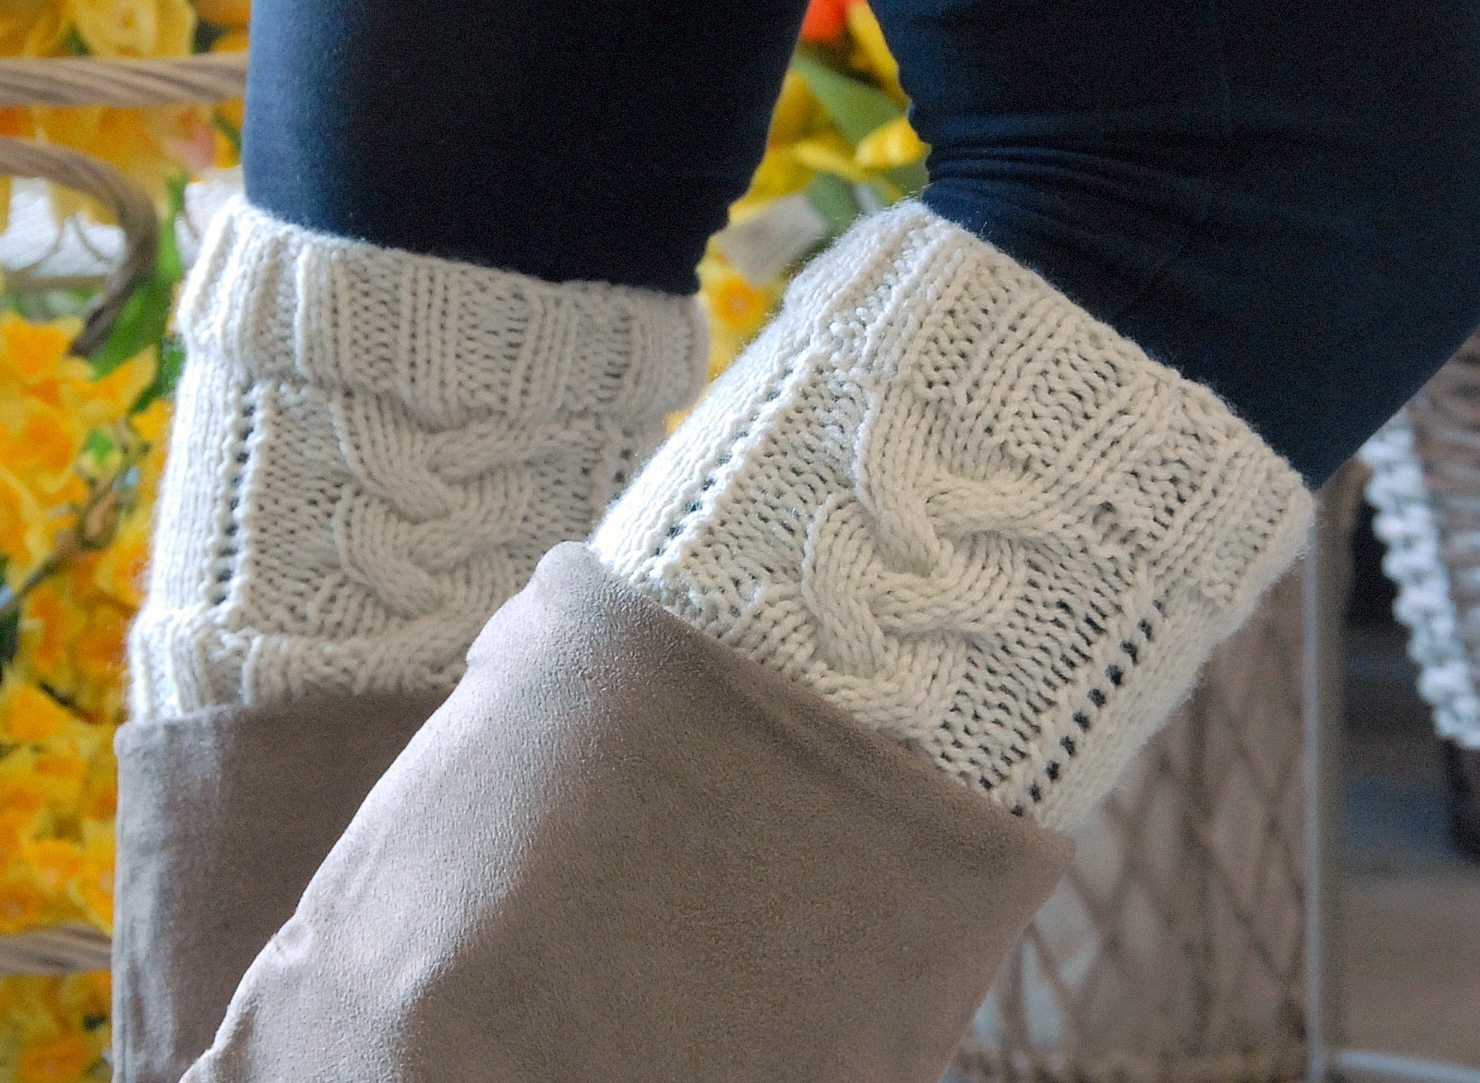 Knitted Boot Cuff Free Patterns : Ben Franklin Crafts and Frame Shop, Monroe, WA: Knitted Boot Cuffs FREE Pattern